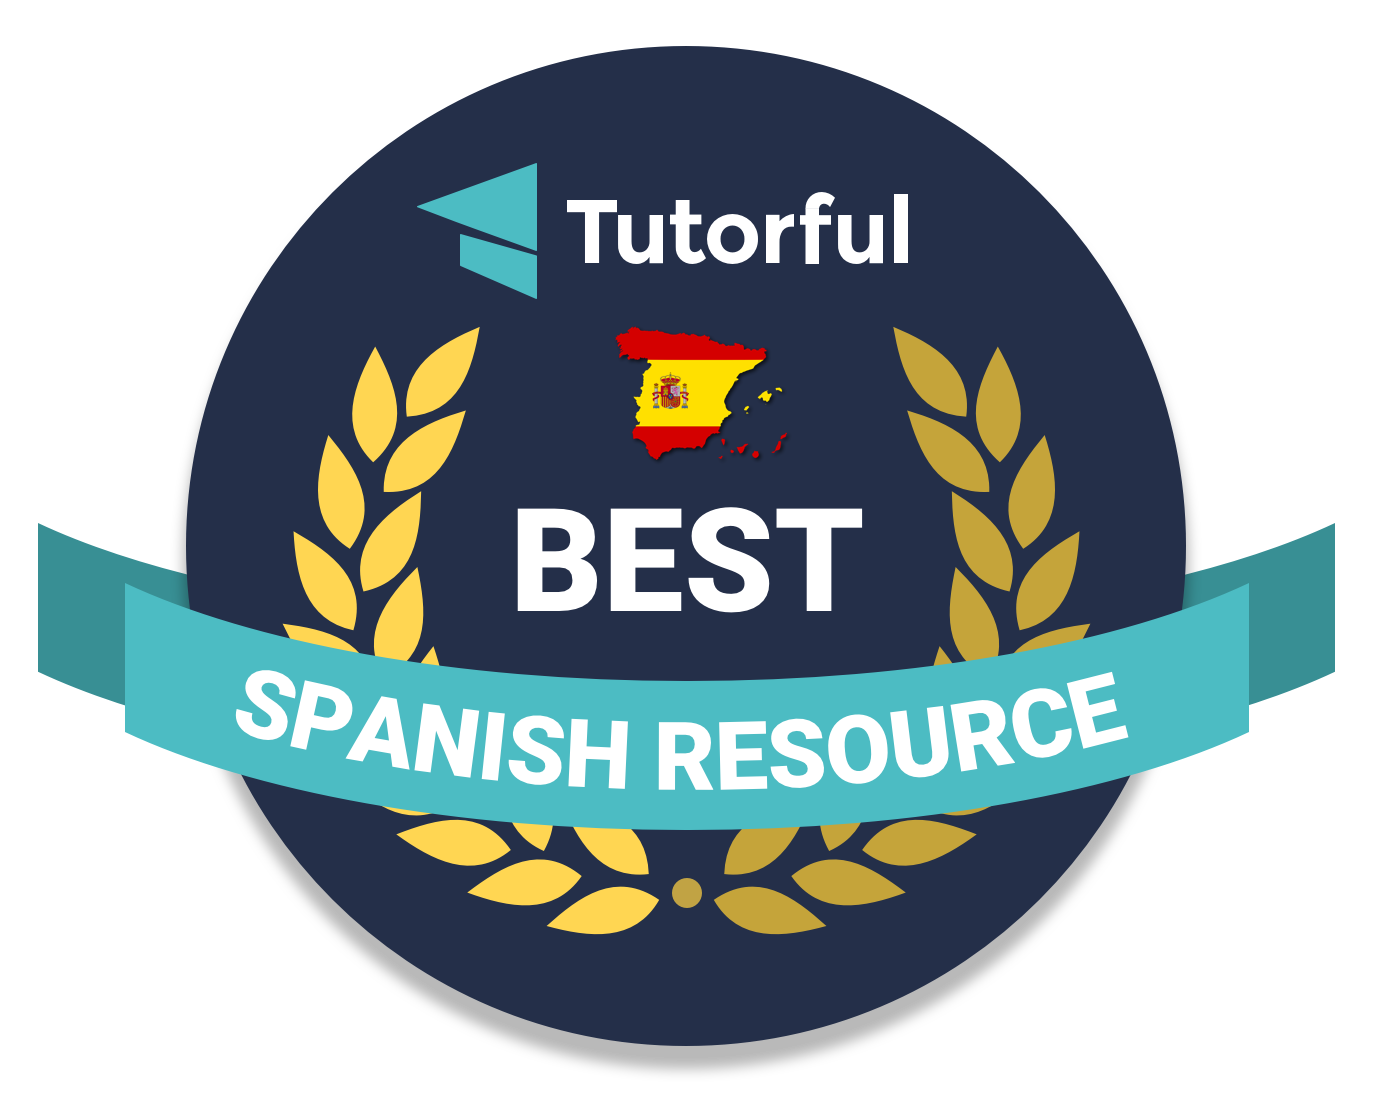 Top 50 Spanish Resources